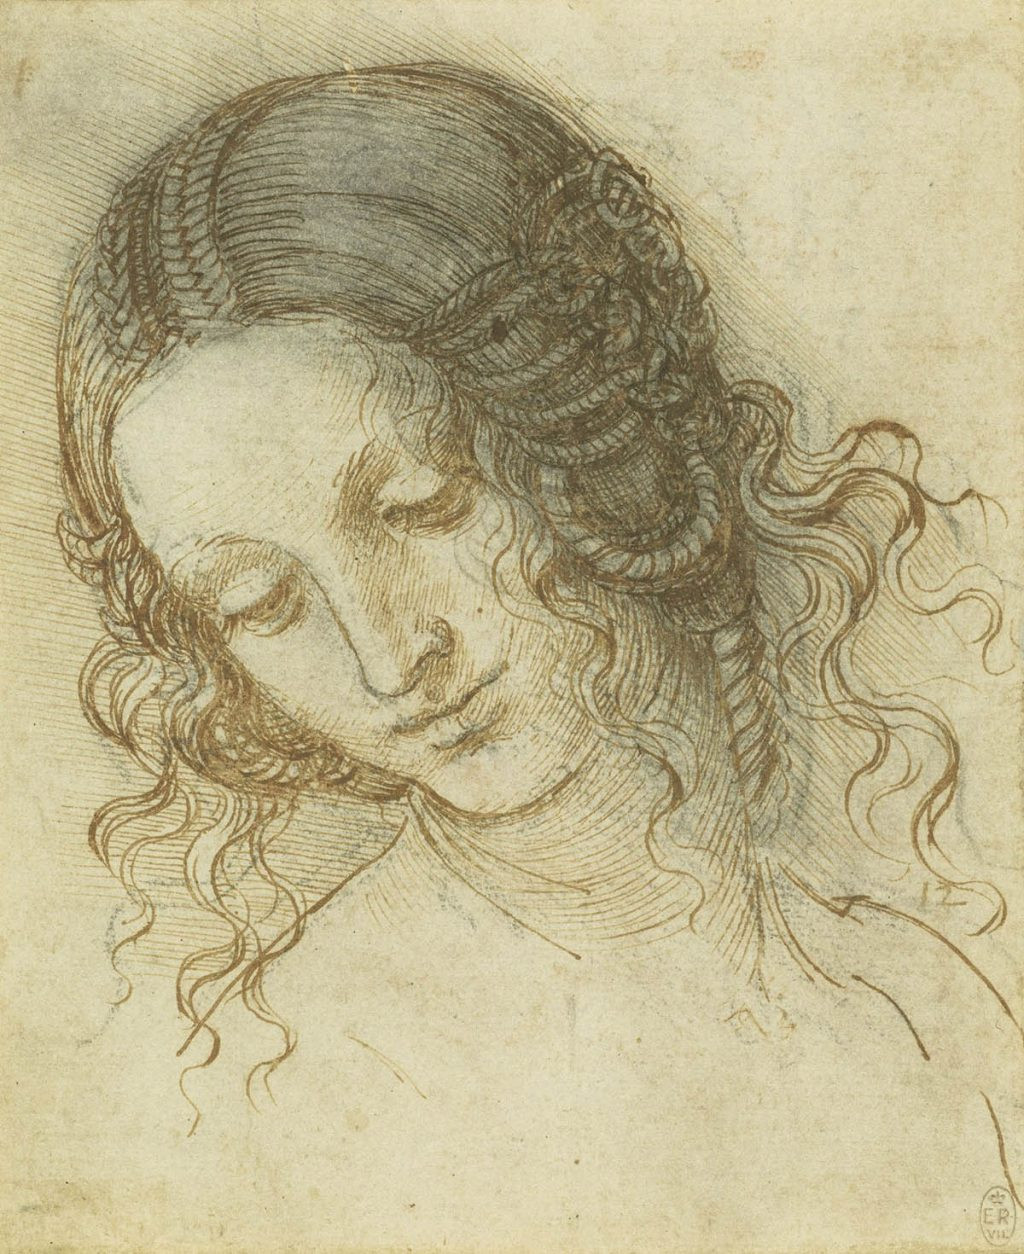 Leonardo da Vinci (1452-1519) The head of Leda c.1505-8 Black chalk, pen and ink on paper Copyright The Royal Collection Trust